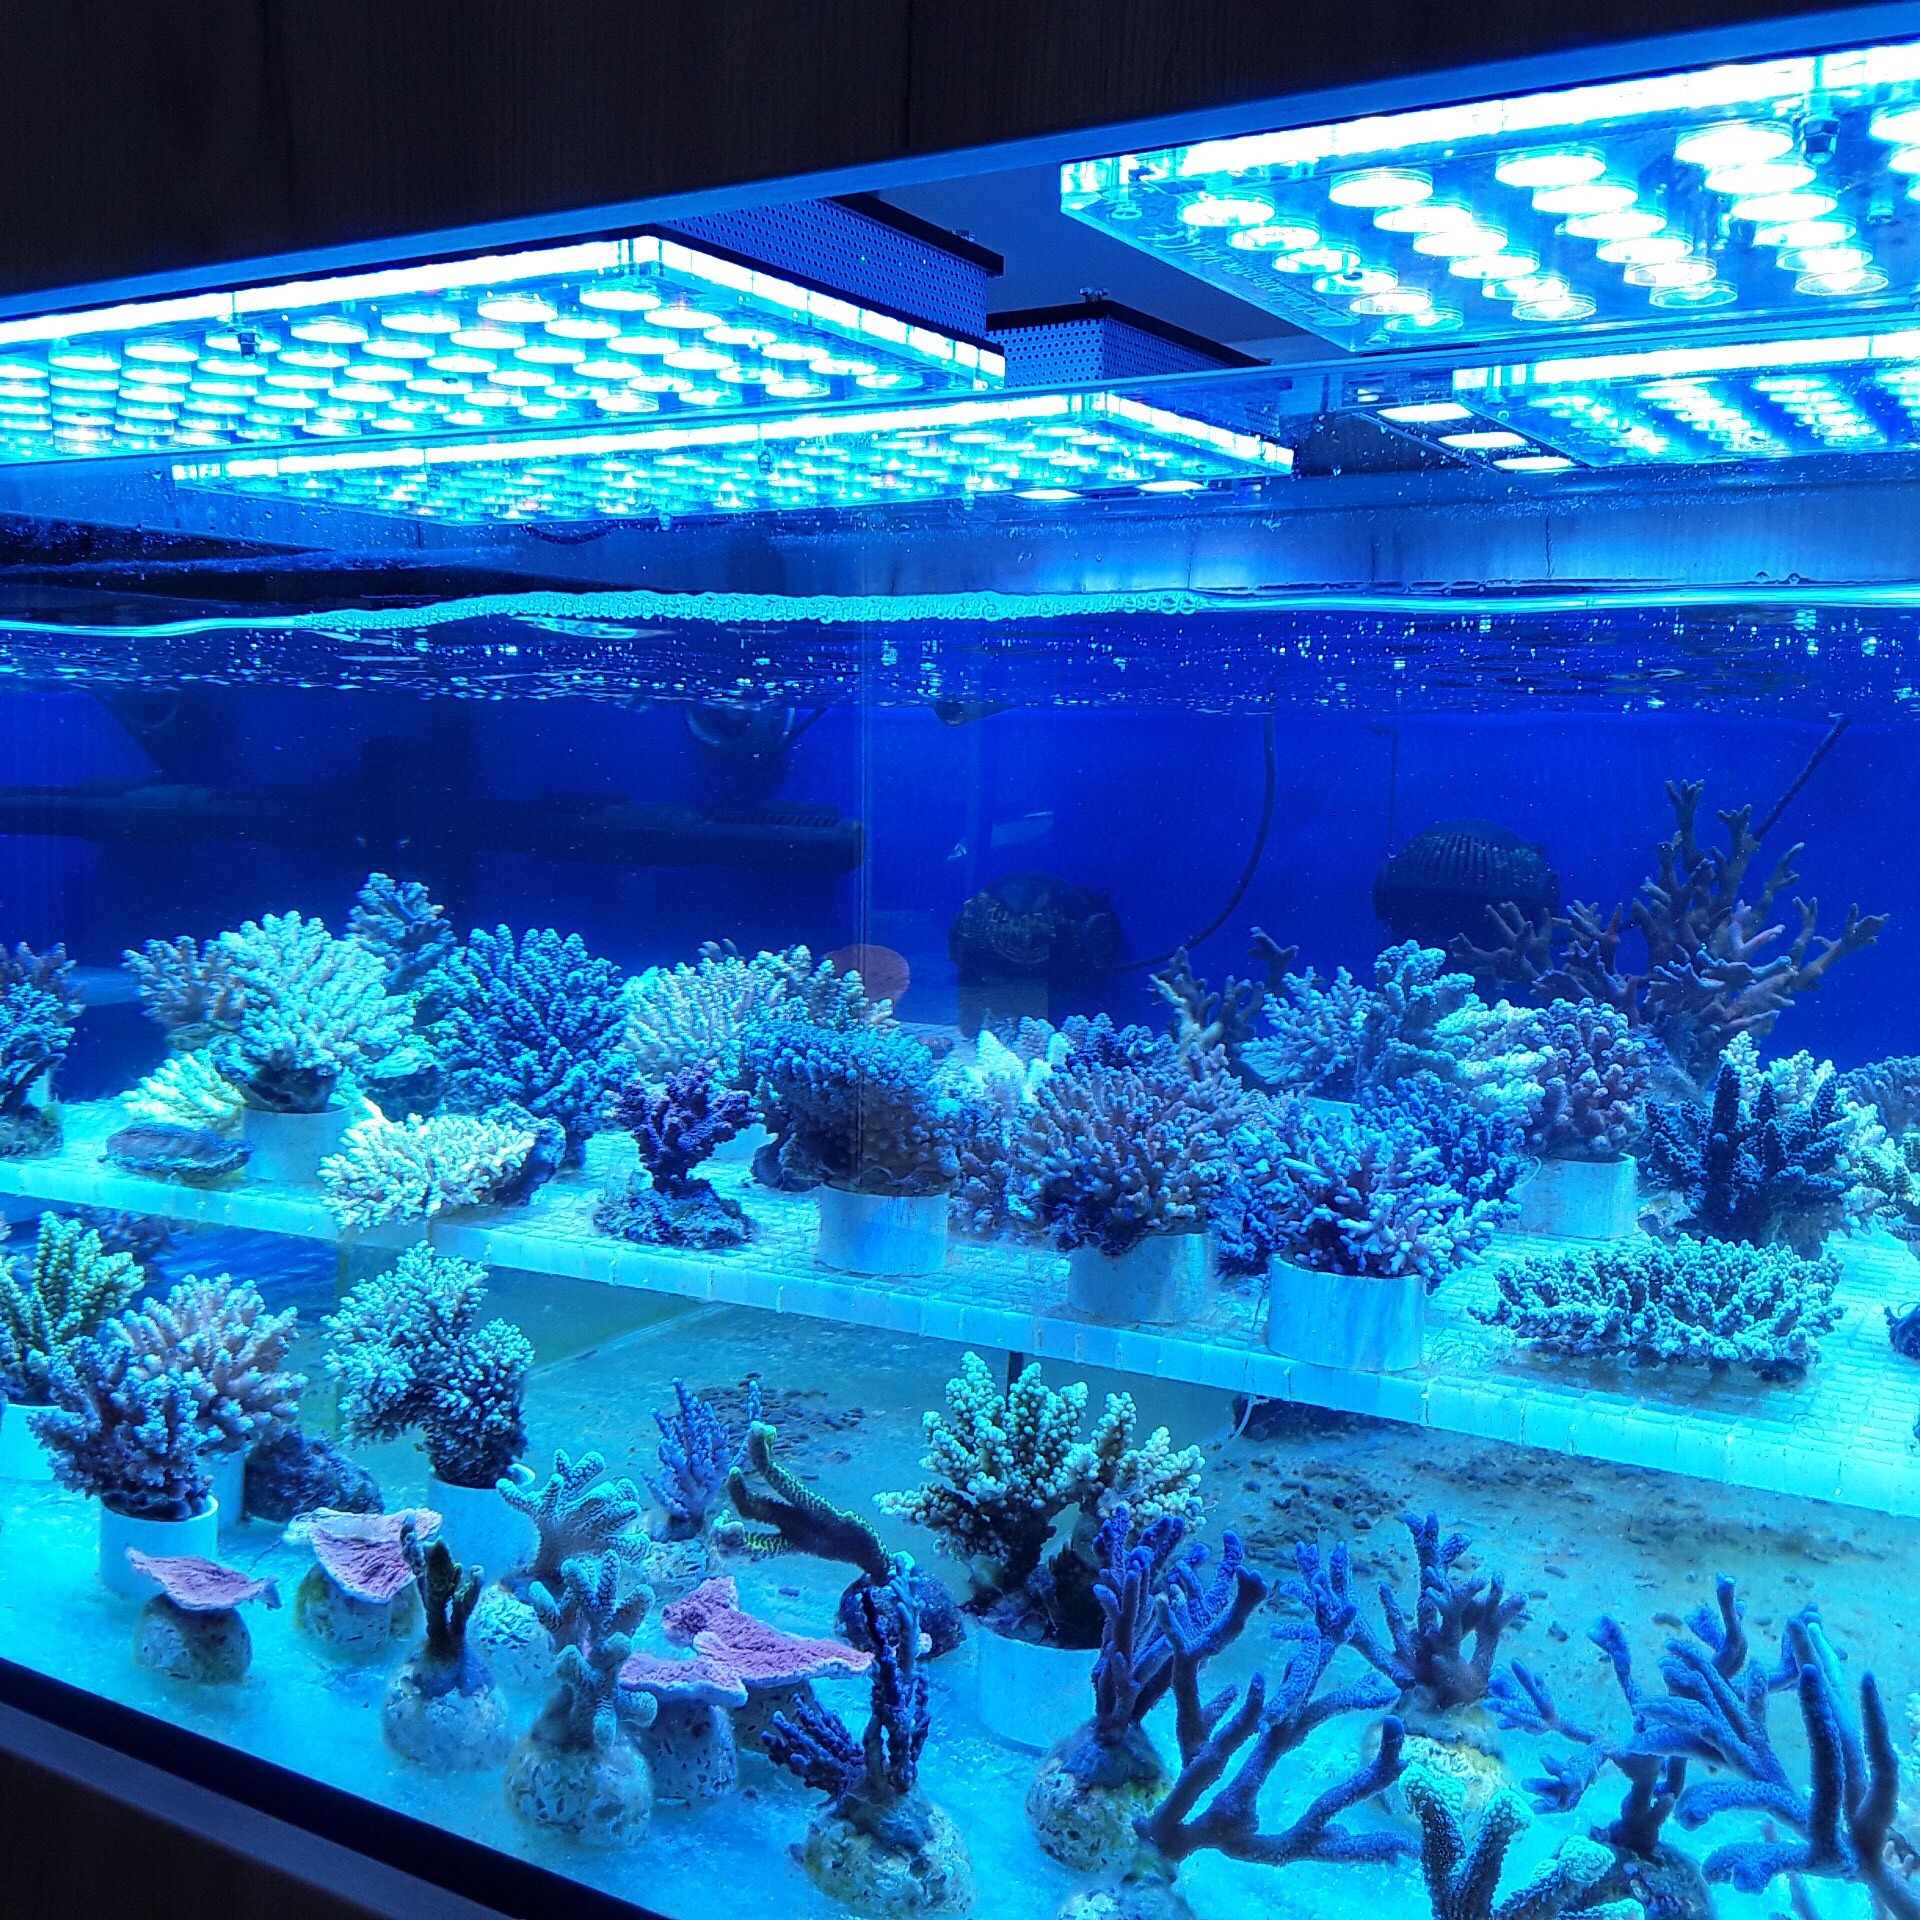 Austria Store Reported Your Led Lighting Grow Coral Very